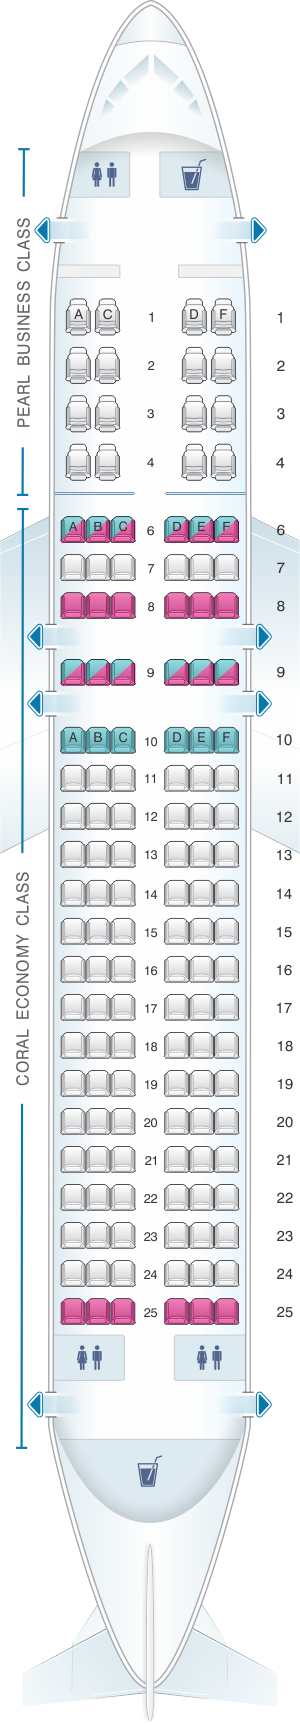 Seat map for Etihad Airways Airbus A320 200